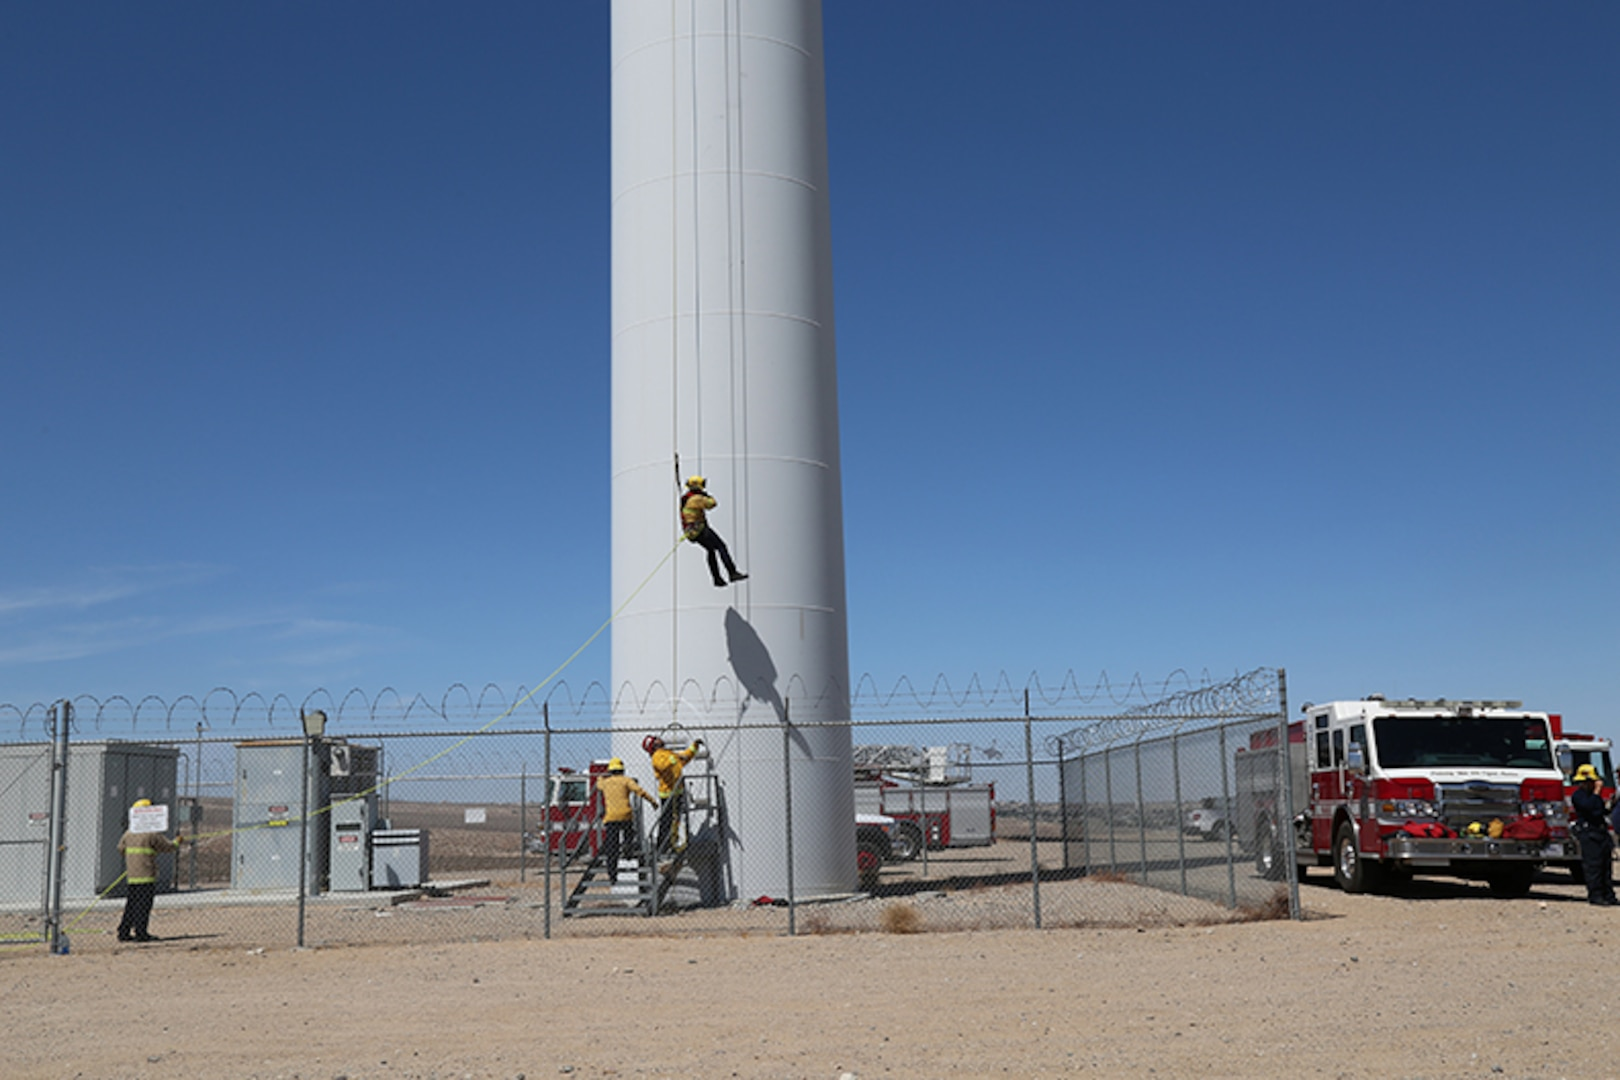 Eric Keck, firefighter/paramedic with Fire and Emergency Services, rappels 230 feet from a wind turbine as part of the Technical Rope Rescue training held aboard Marine Corps Logistics Base Barstow, California, April 15. Captain Tim Yonta, prepares to guide Keck safely to his feet once he reaches the platform below. The training was conducted by Tech Rescue Trainers, Inc. as part of a comprehensive series of technical rescue courses.